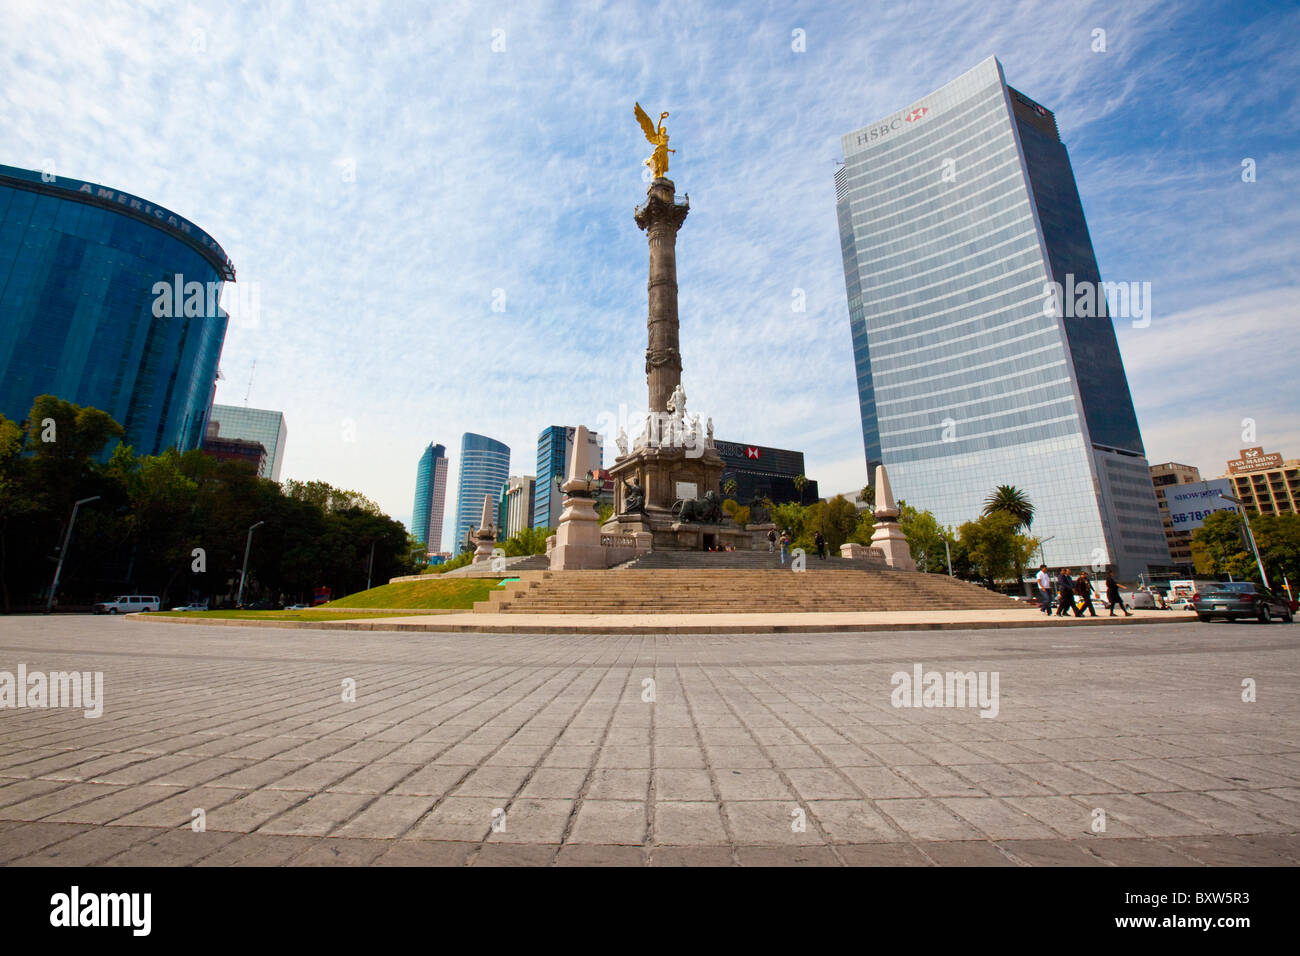 angel-de-la-independencia-on-paseo-de-la-reforma-in-mexico-city-BXW5R3.jpg